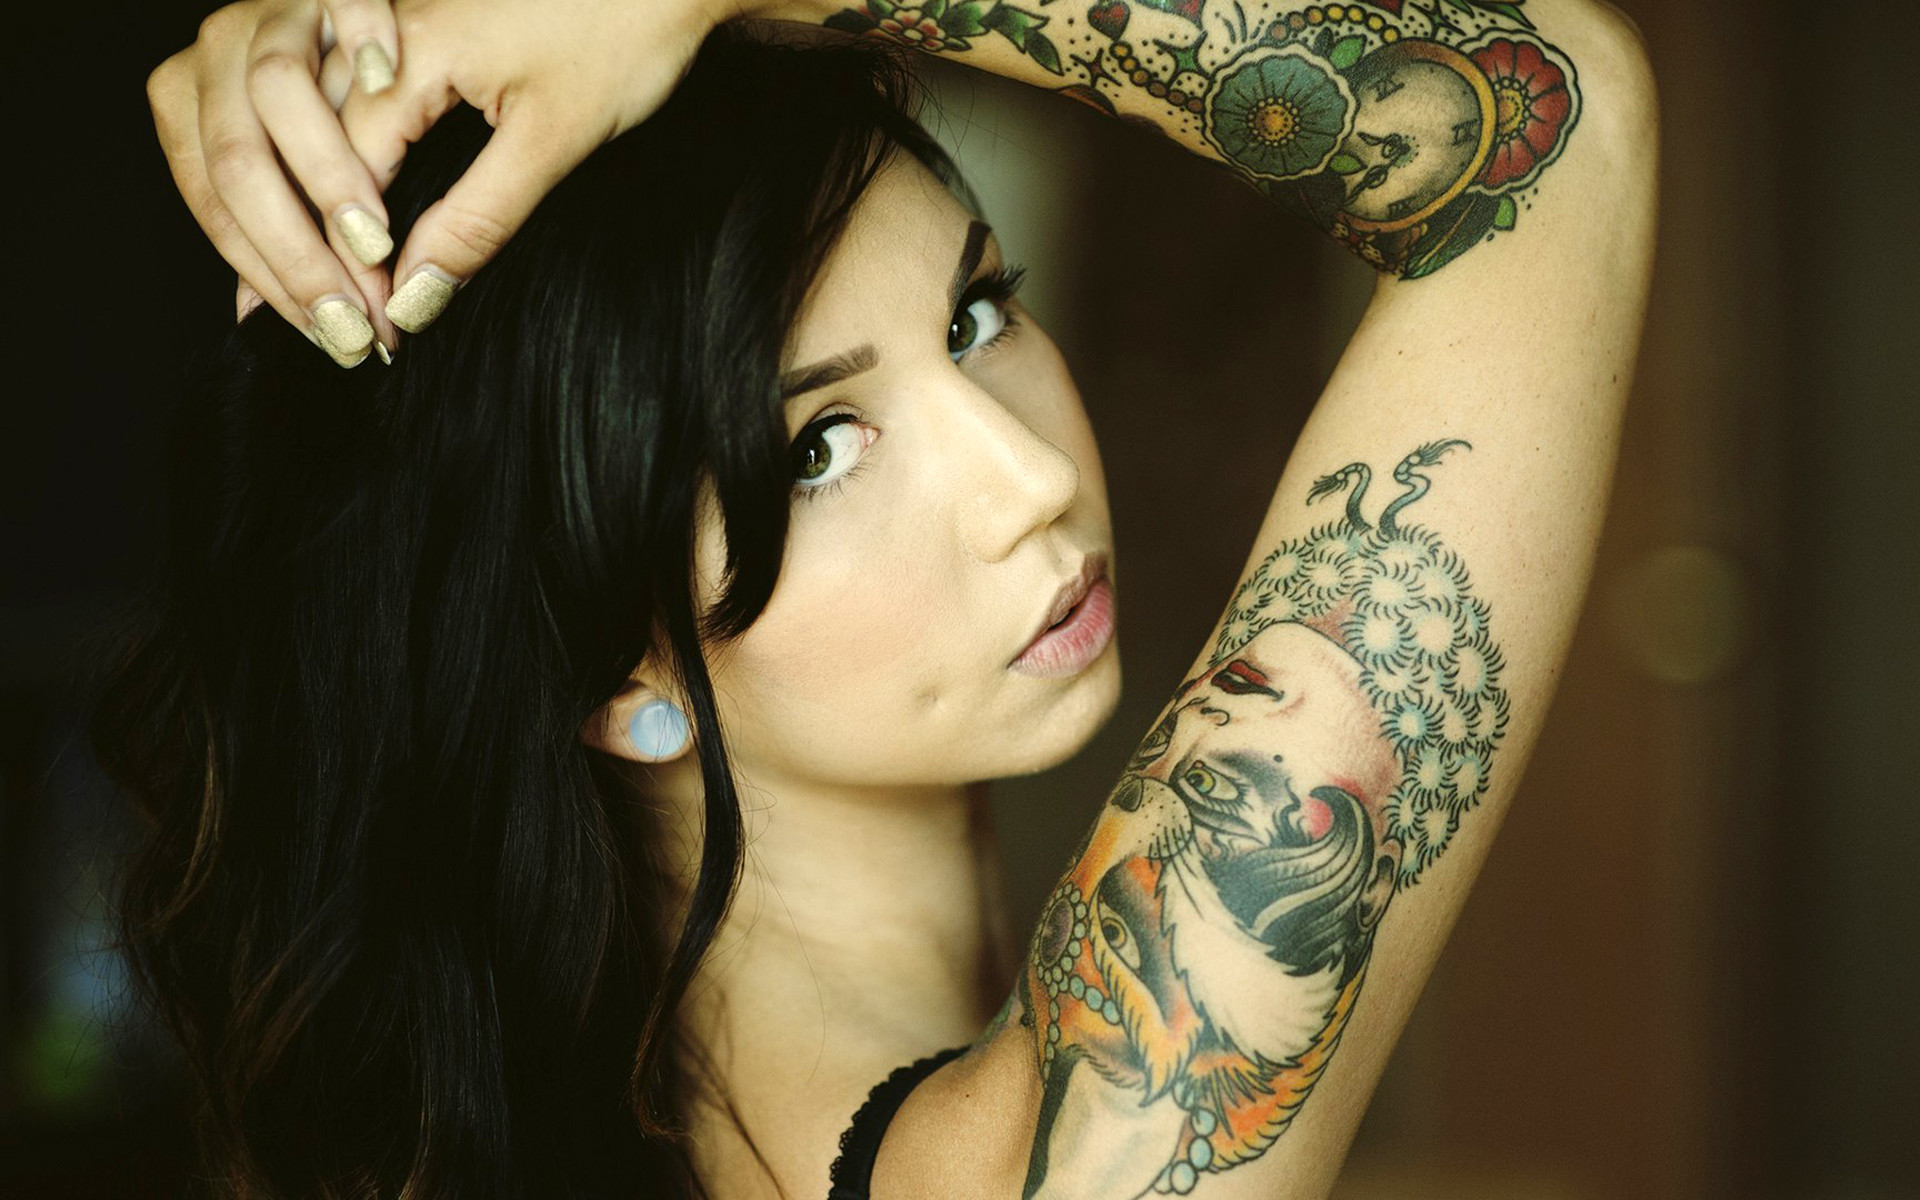 1920x1200 Image for Girl Tattoos Tumblr Cute Wallpaper Desktop